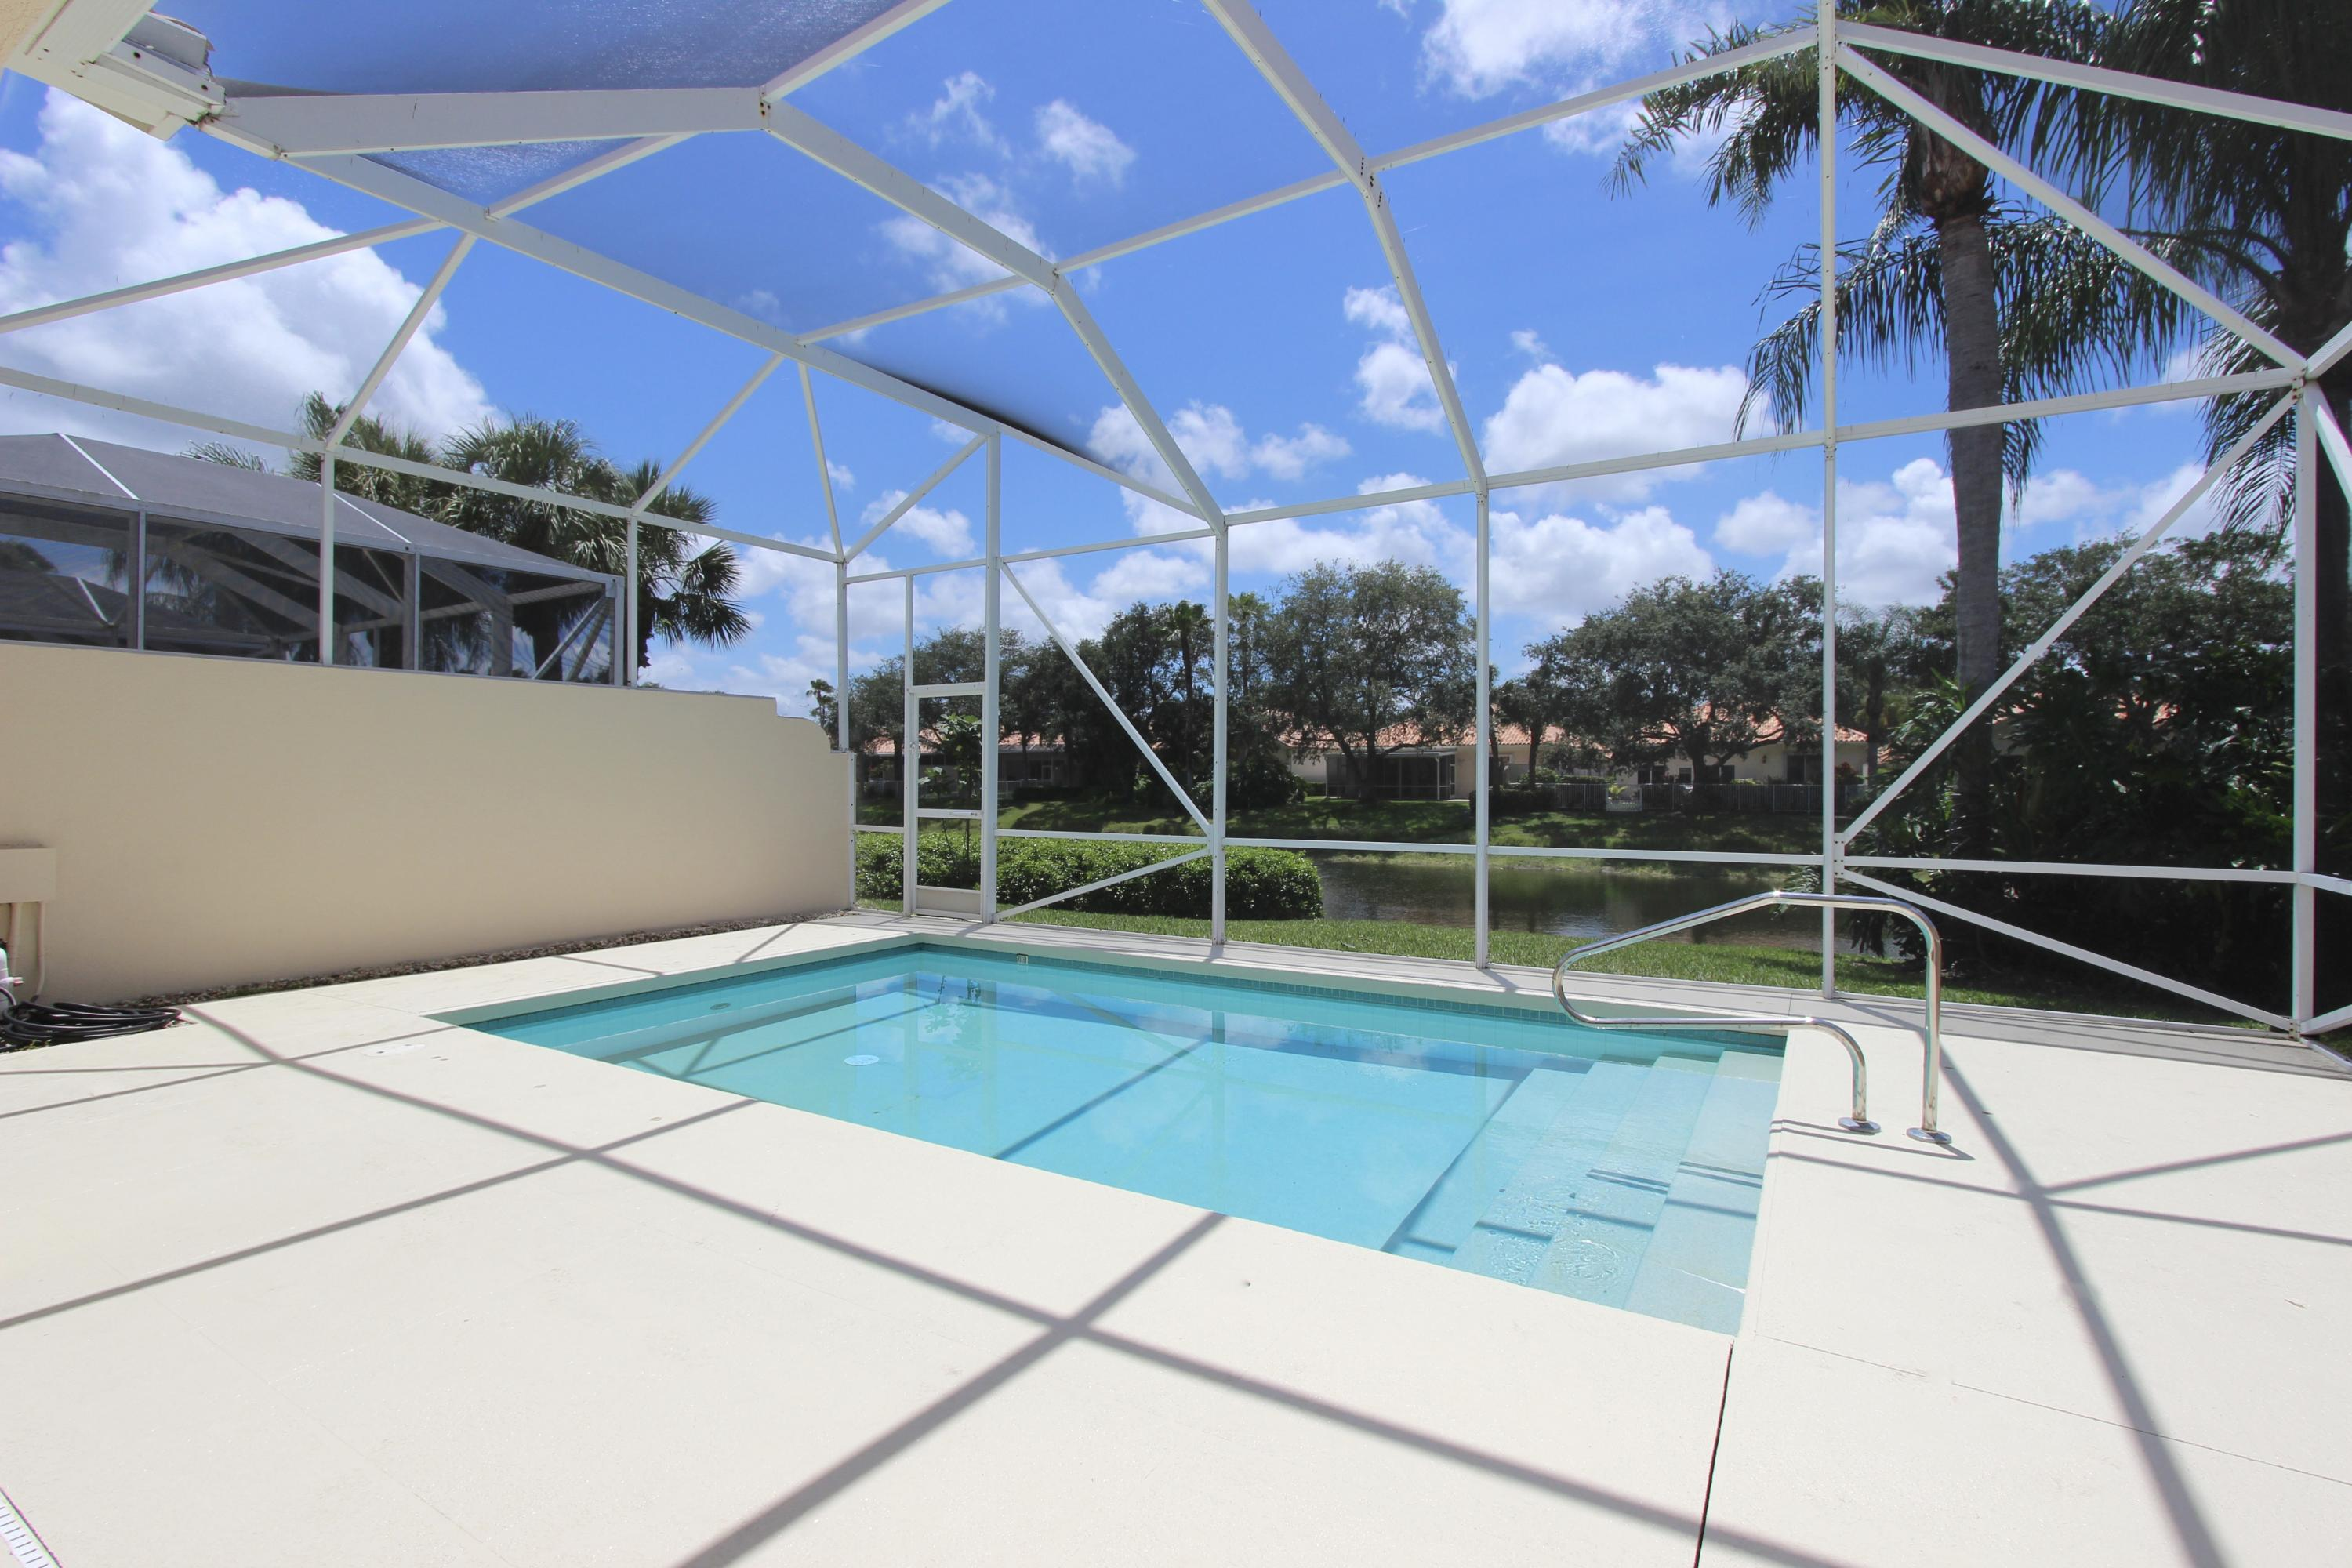 2679 James River Road, West Palm Beach, Florida 33411, 3 Bedrooms Bedrooms, ,2 BathroomsBathrooms,Residential,For Sale,James River,RX-10628666